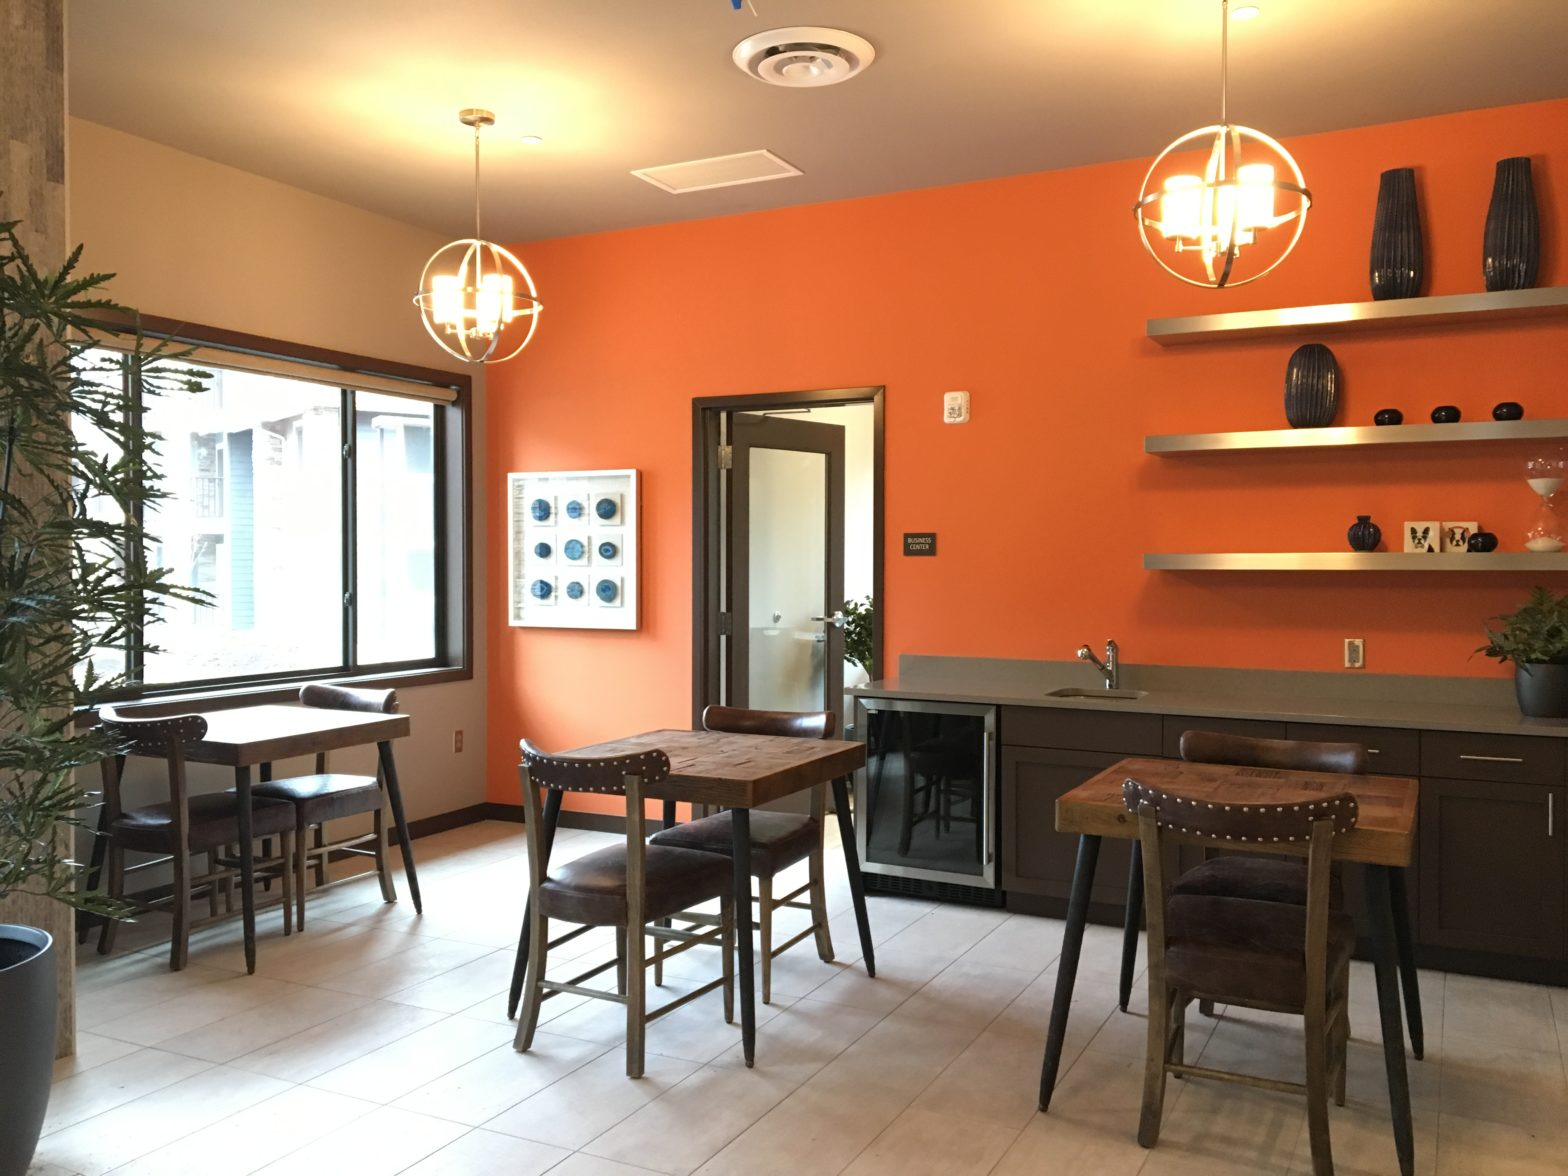 Common Area In Apartment Building With Orange Wall